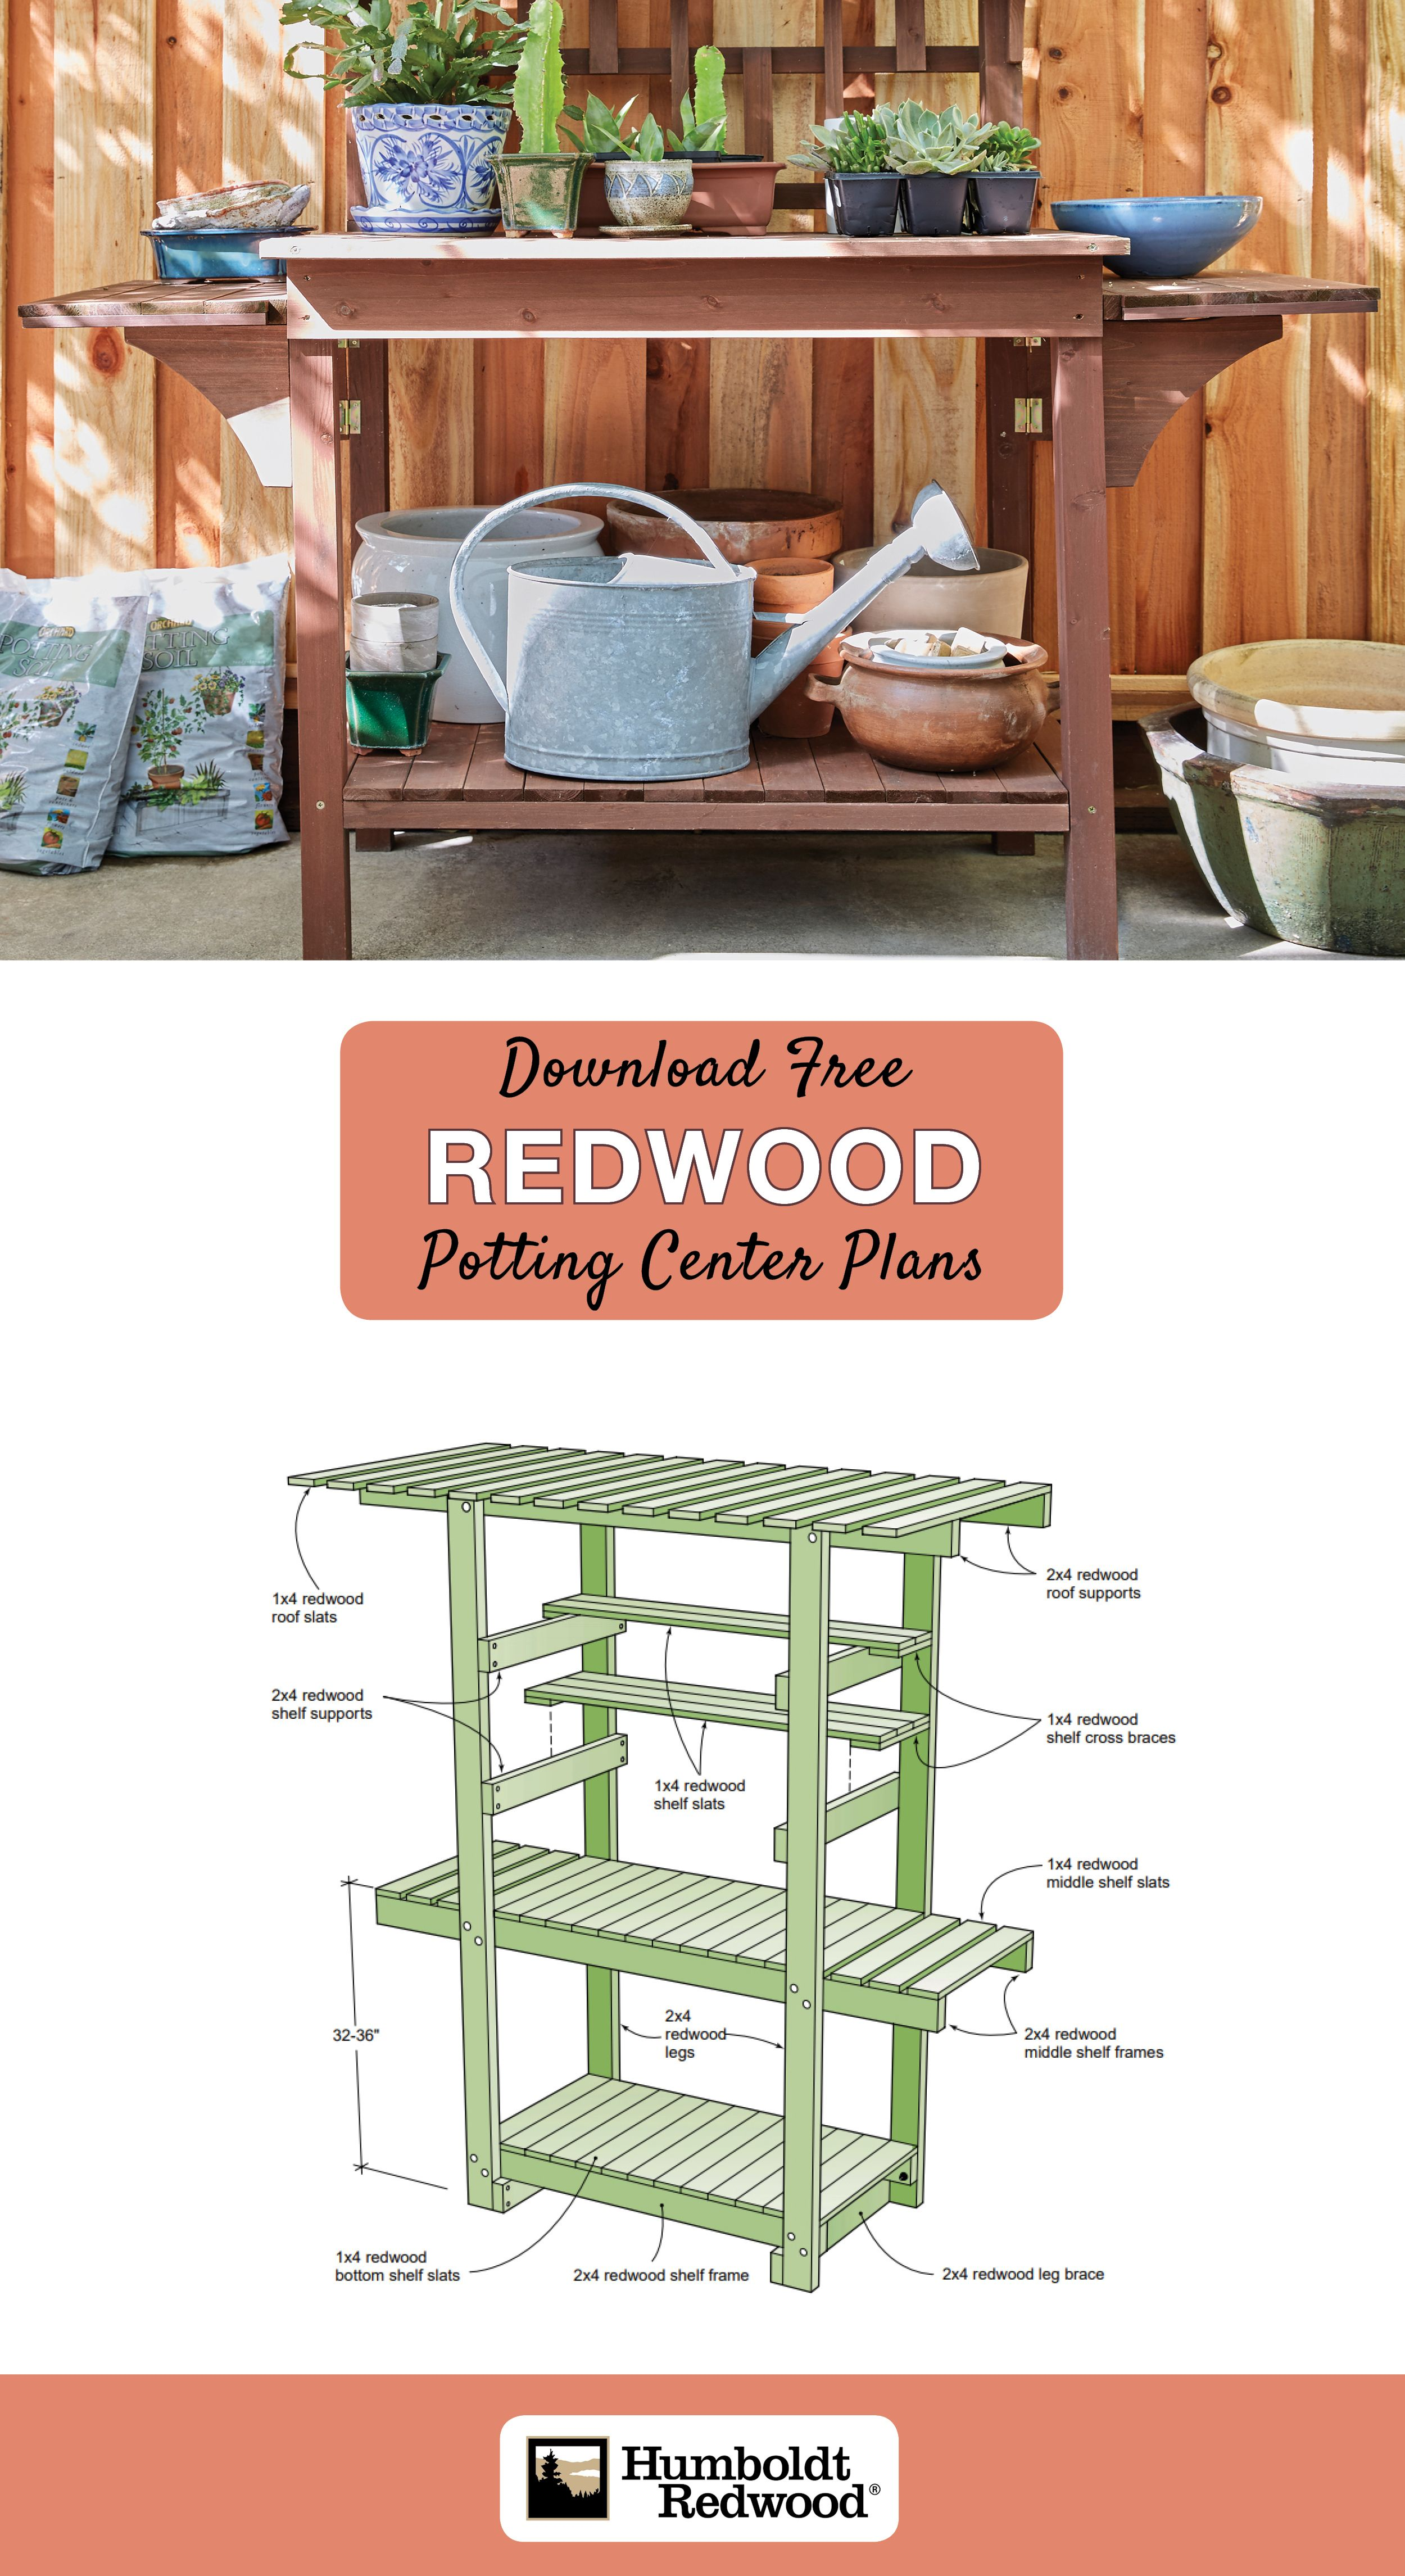 Whether You Are Displaying Prize Bonsai Or Potting New Impatiens This Free Standing Redwood Potting Center Creates A Peacef How To Plan Shelf Supports Redwood